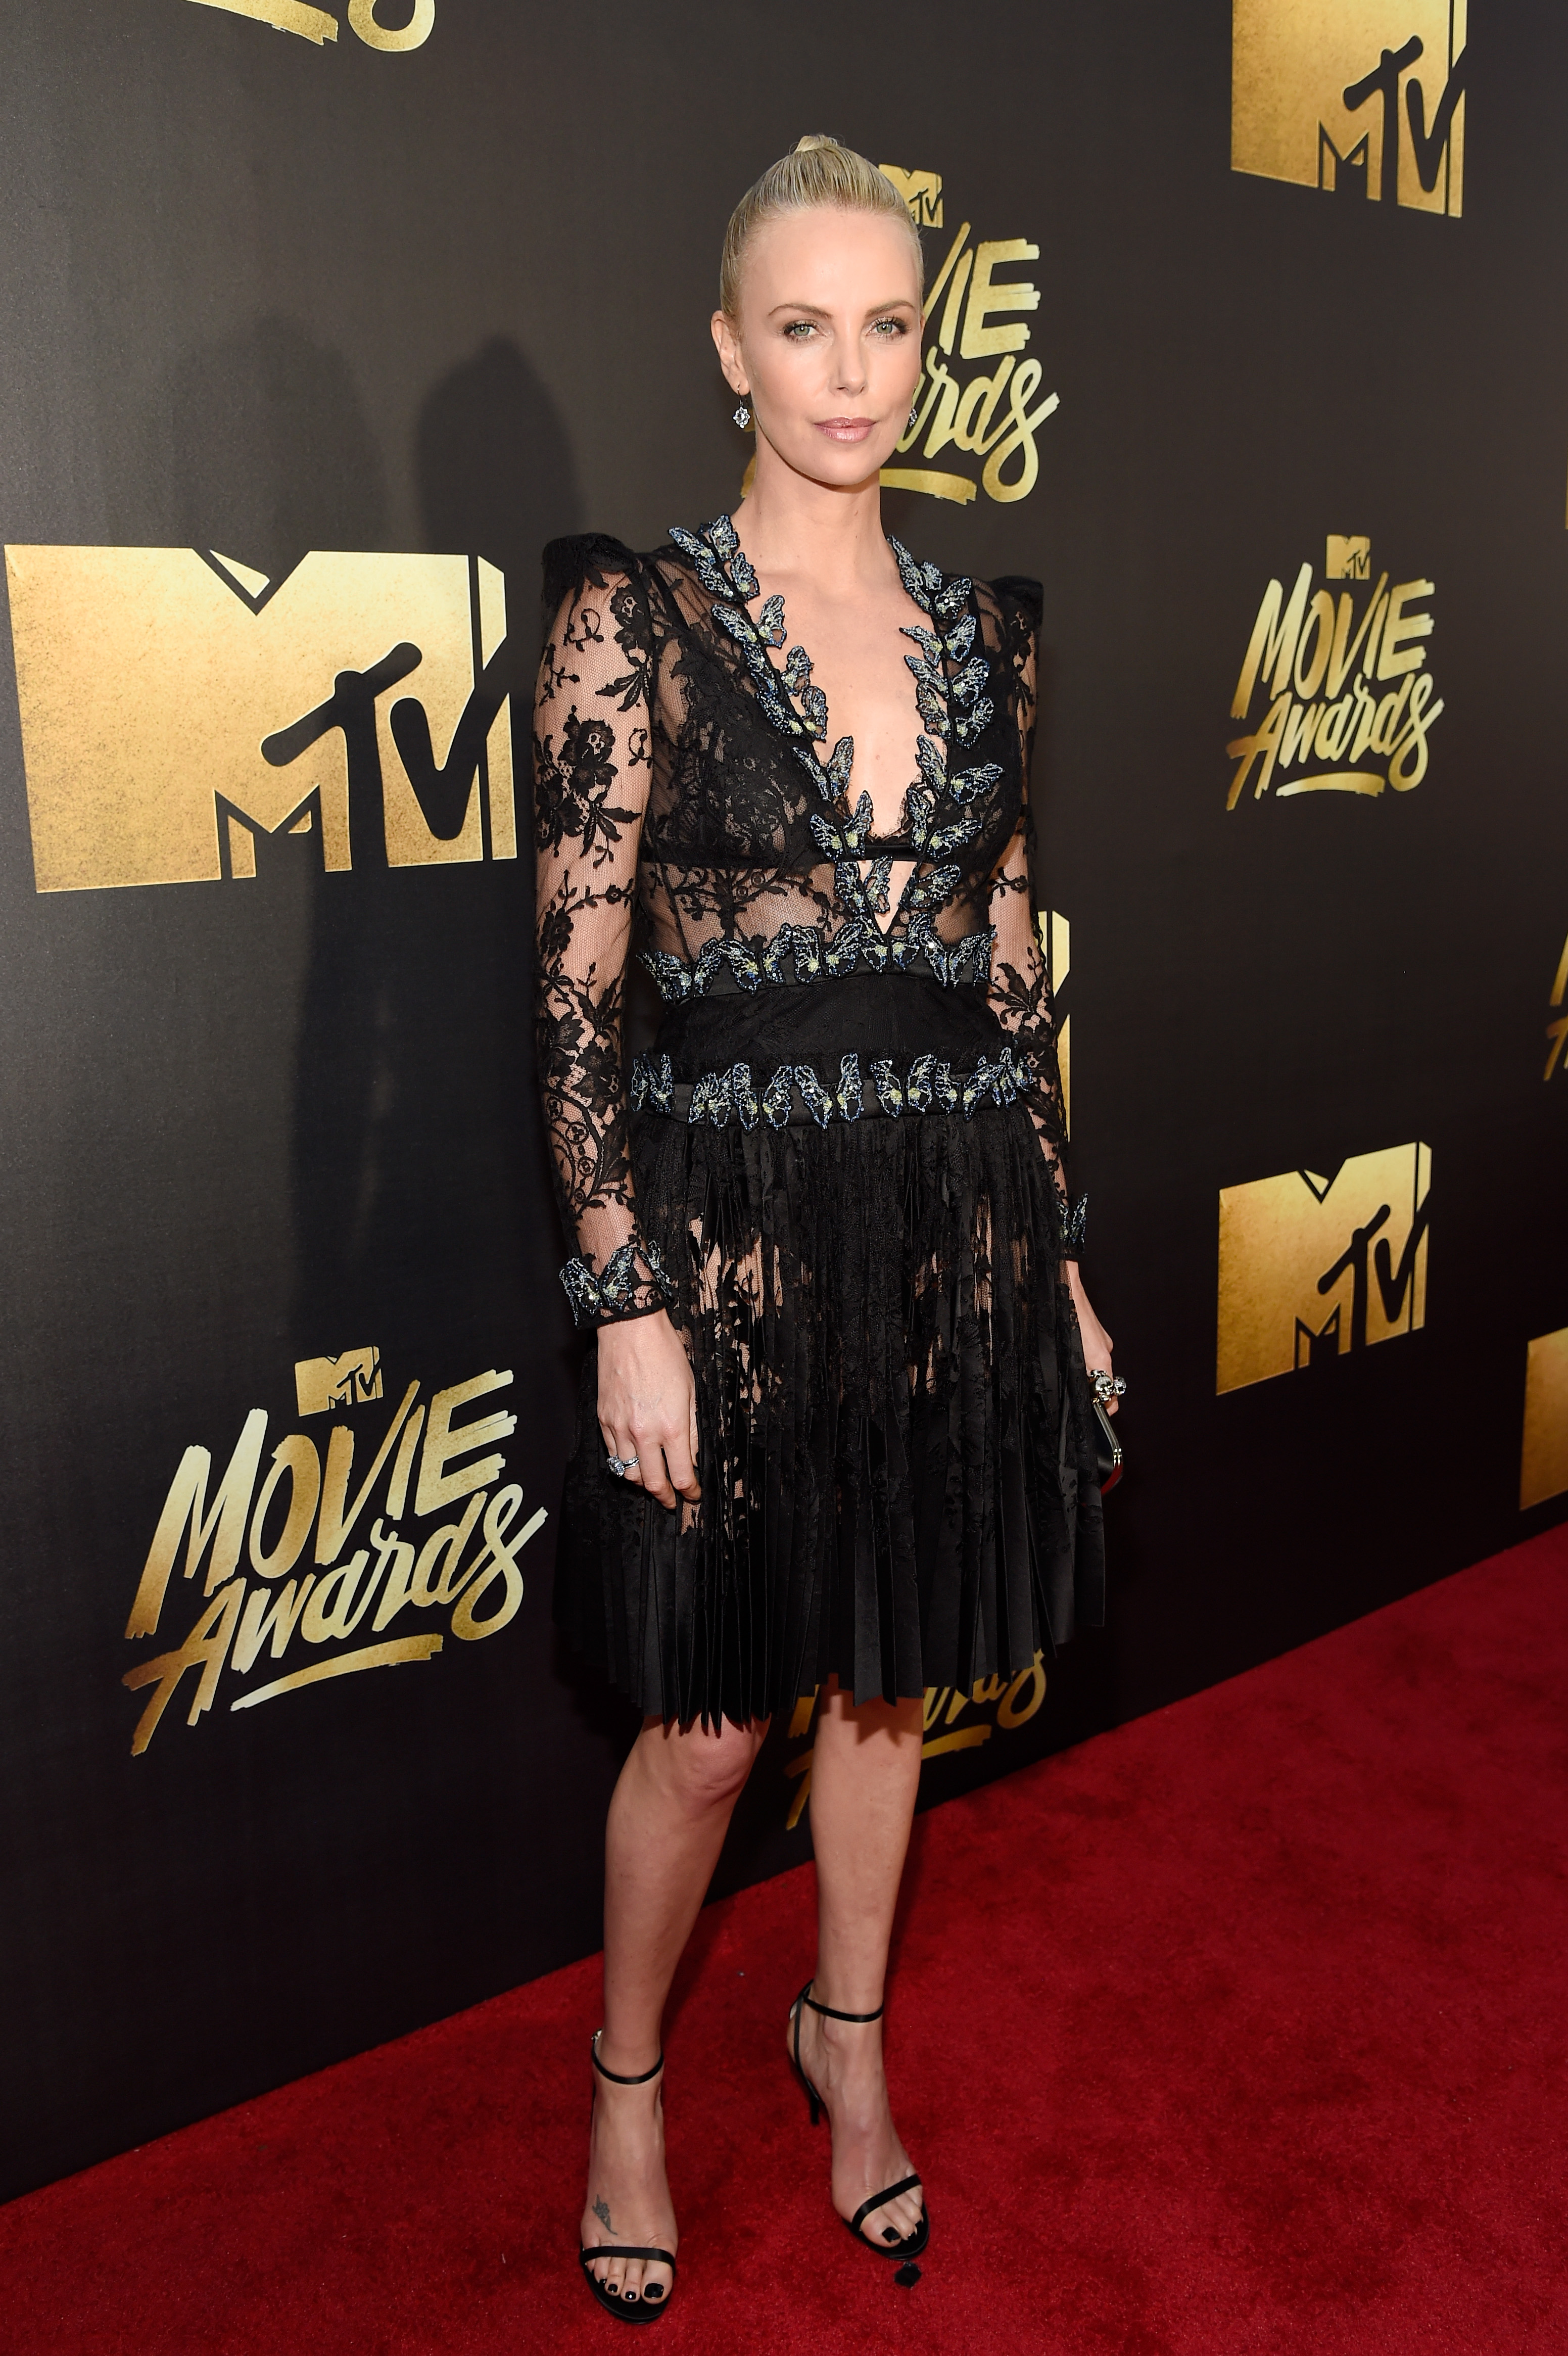 Charlize Theron attends the 2016 MTV Movie Awards at Warner Bros. Studios on April 9, 2016 in Burbank, Calif.